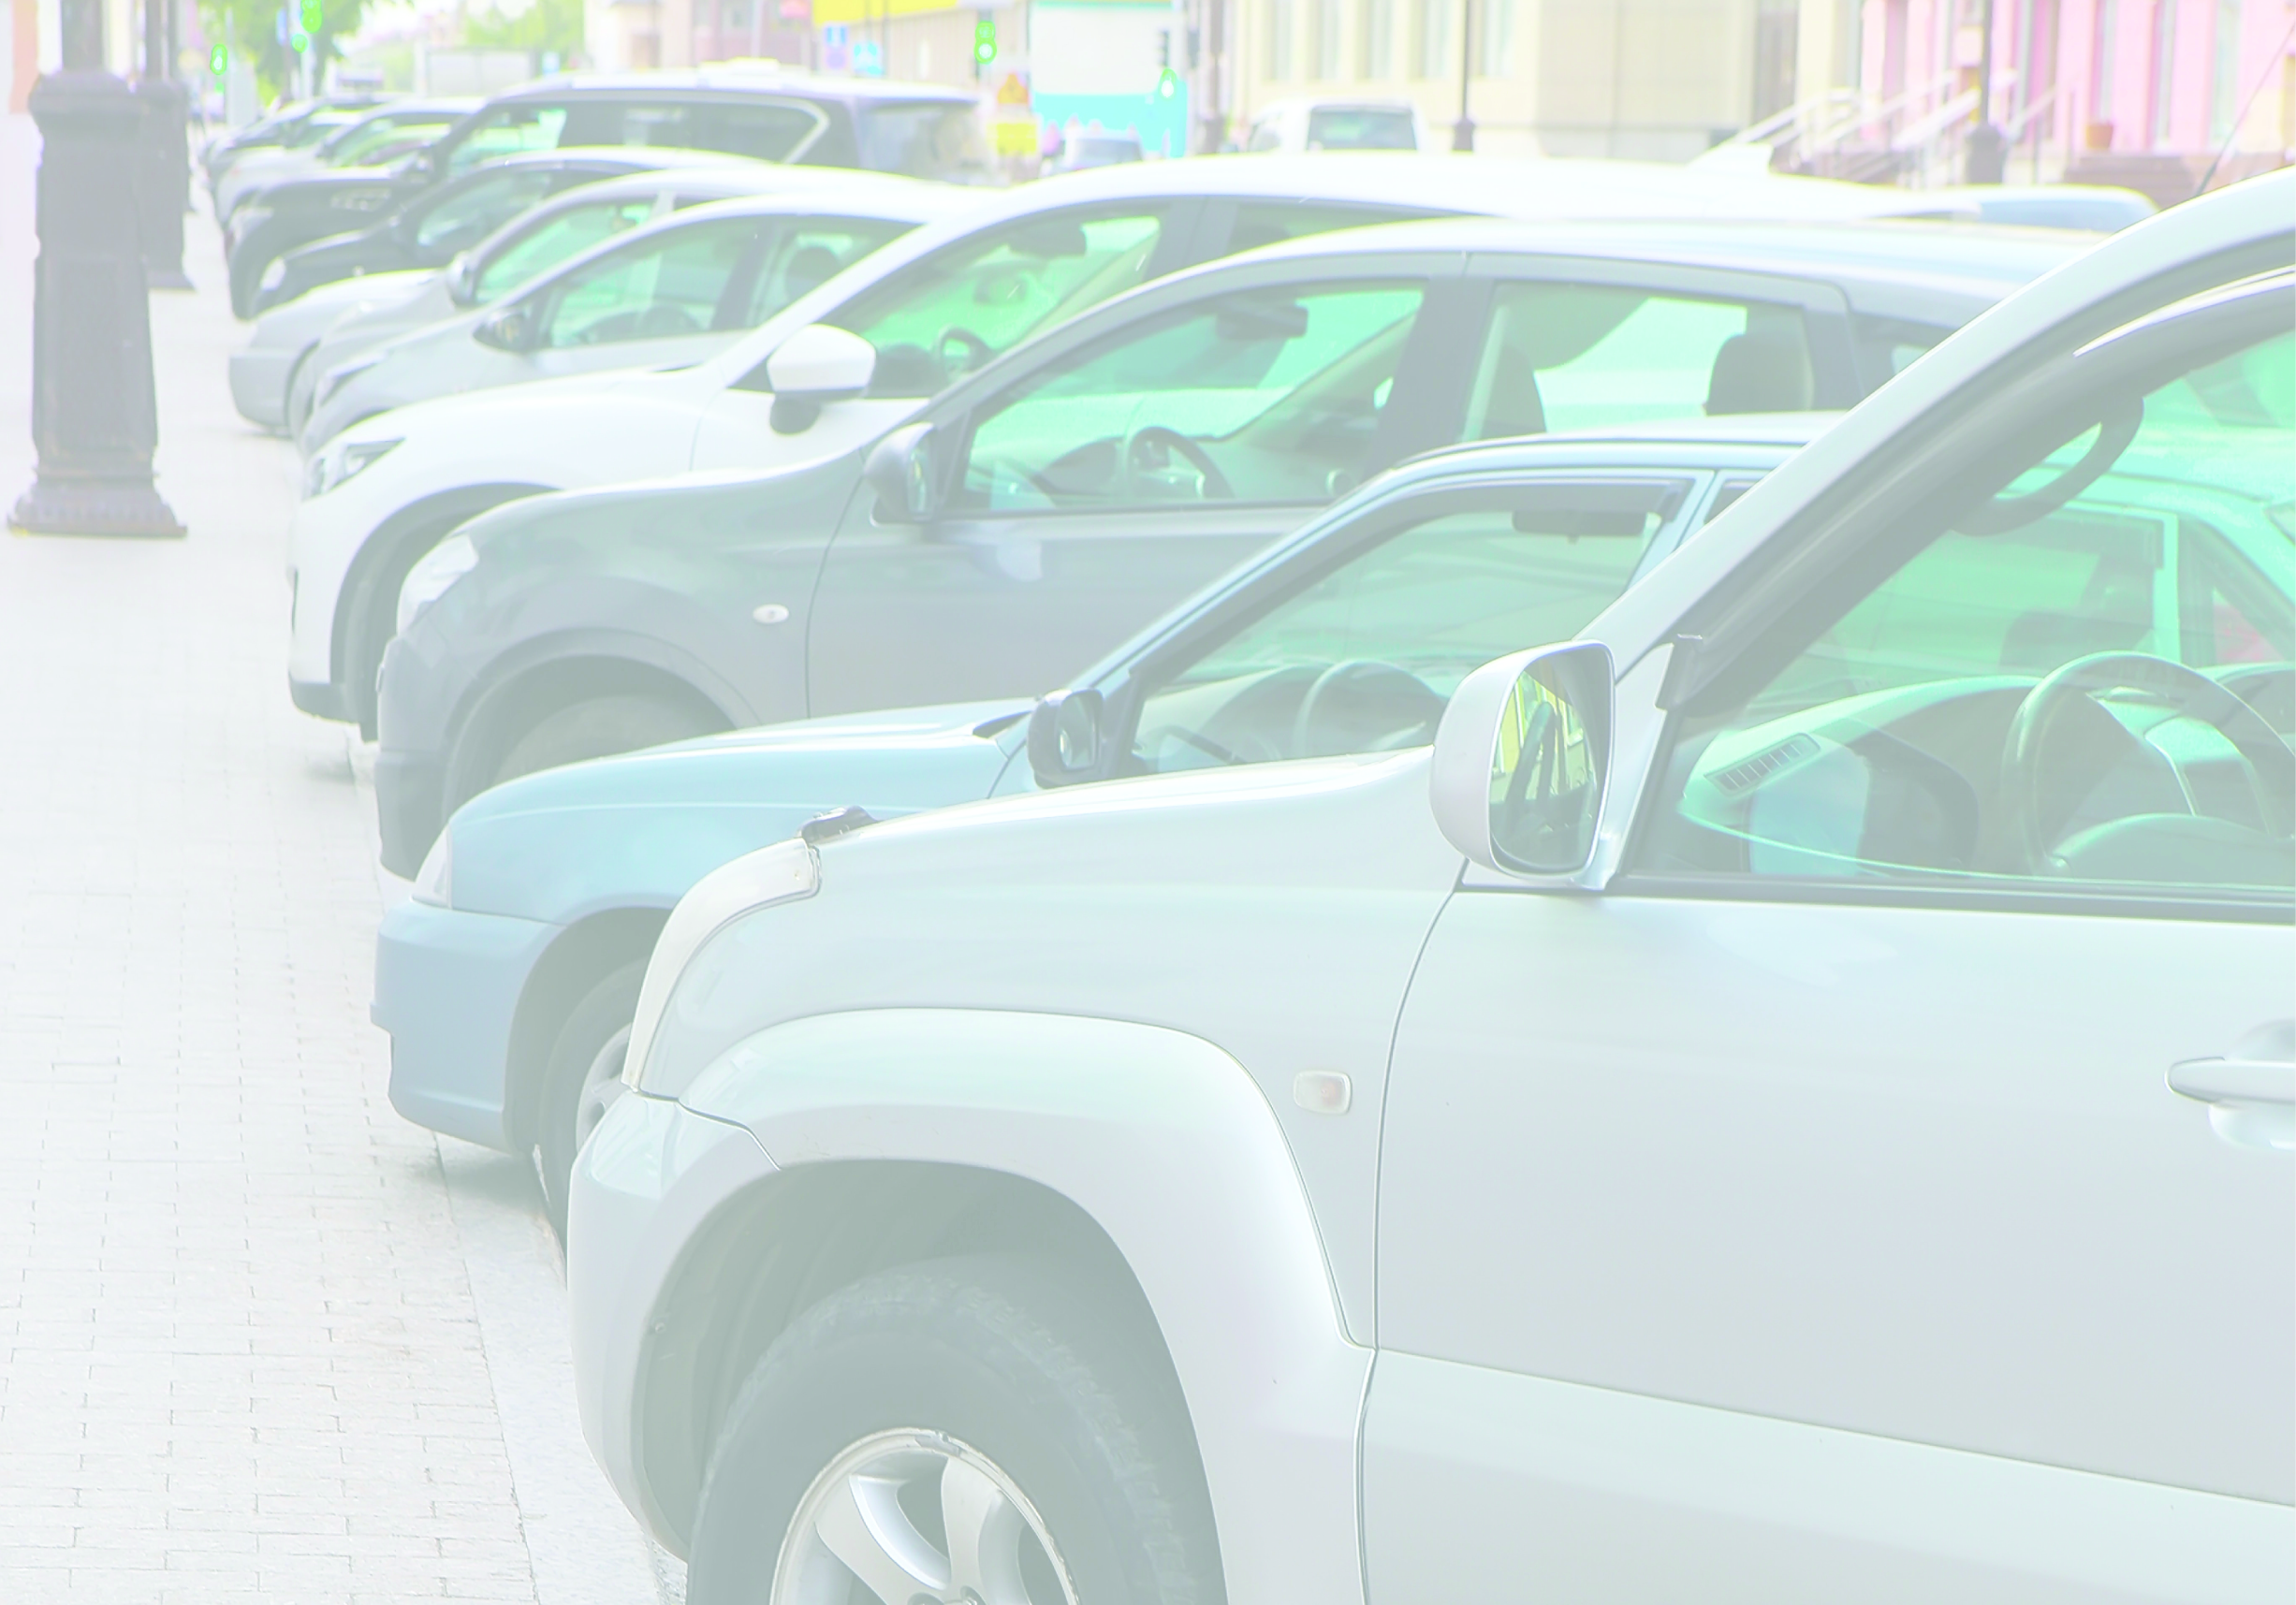 Helping a city rebuild by making parking payment easier